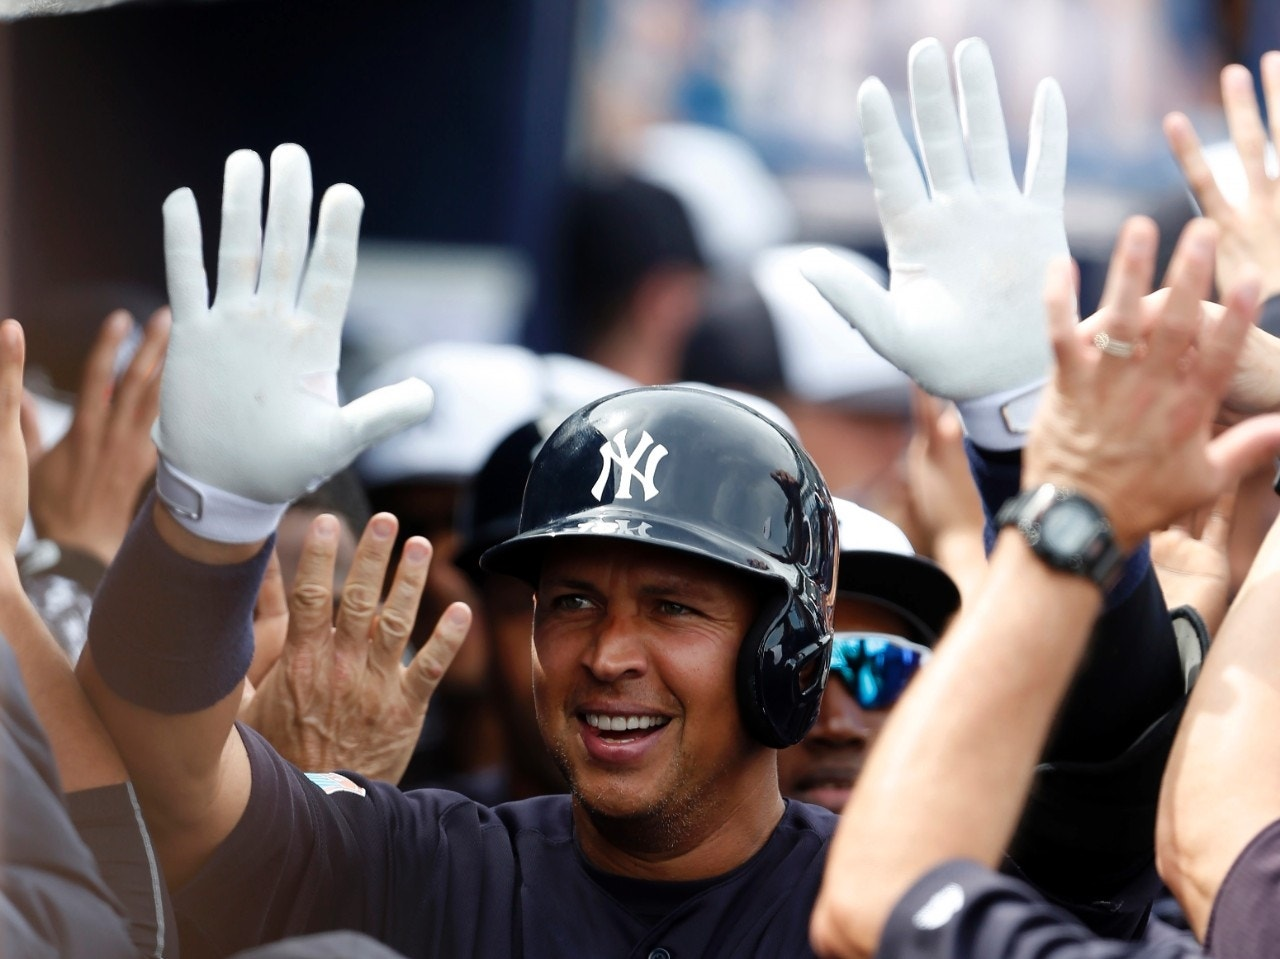 A-Rod is dating Sergey Brin's ex-wife